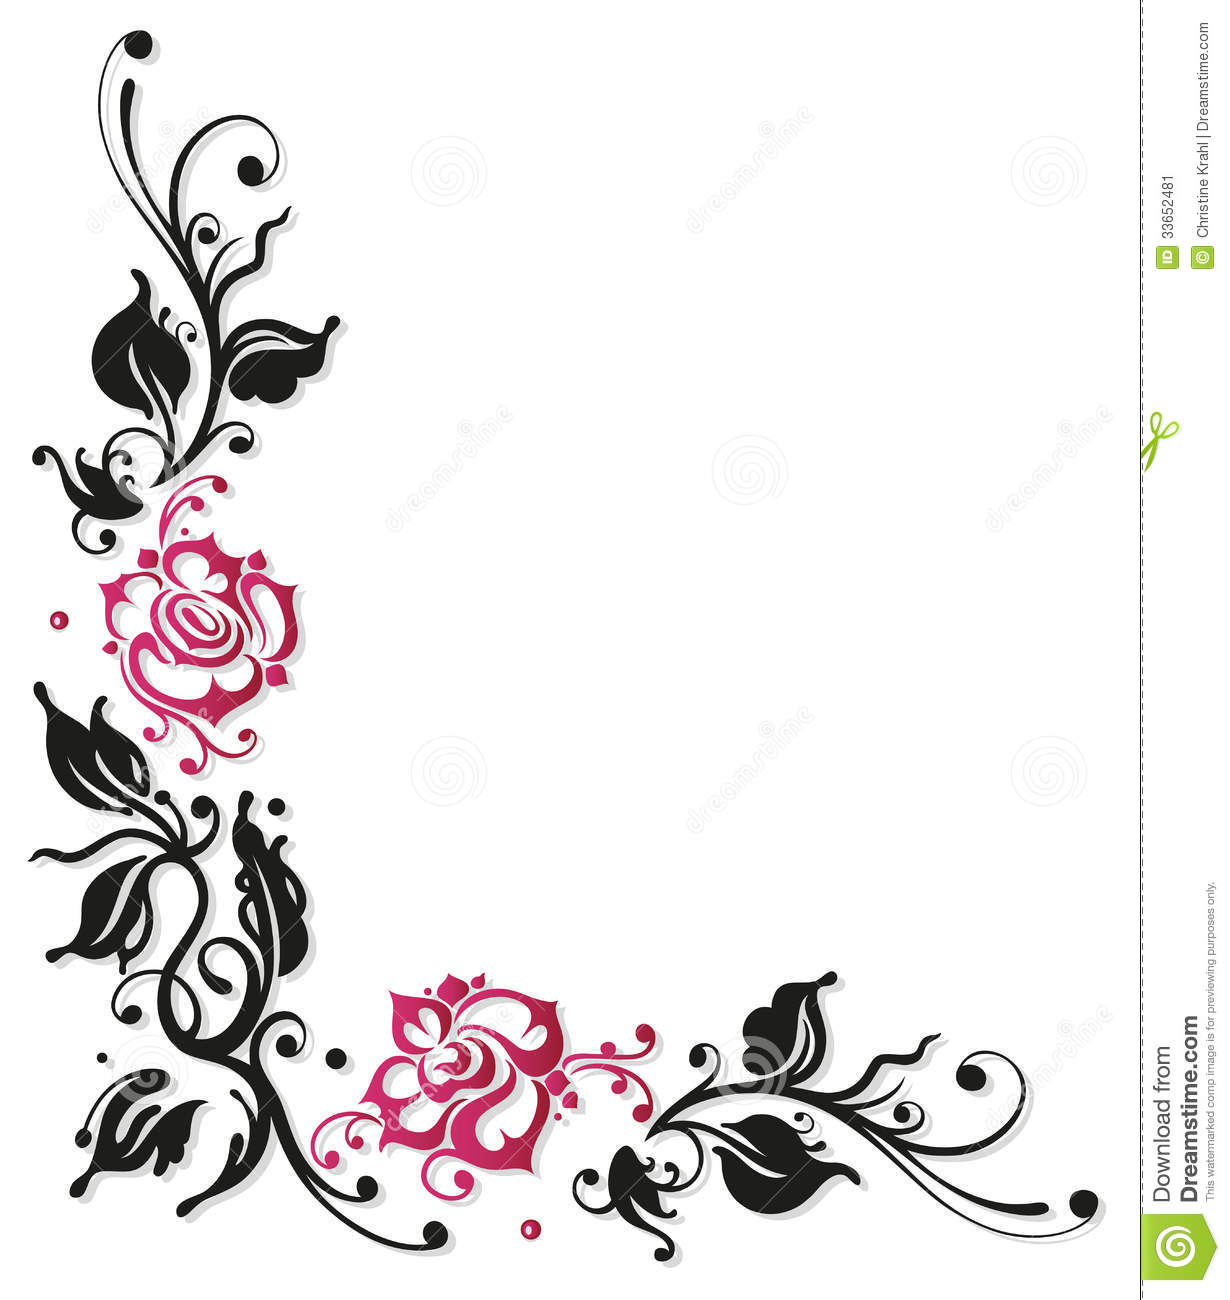 Black And White Flower Border Free Download Best Black And White